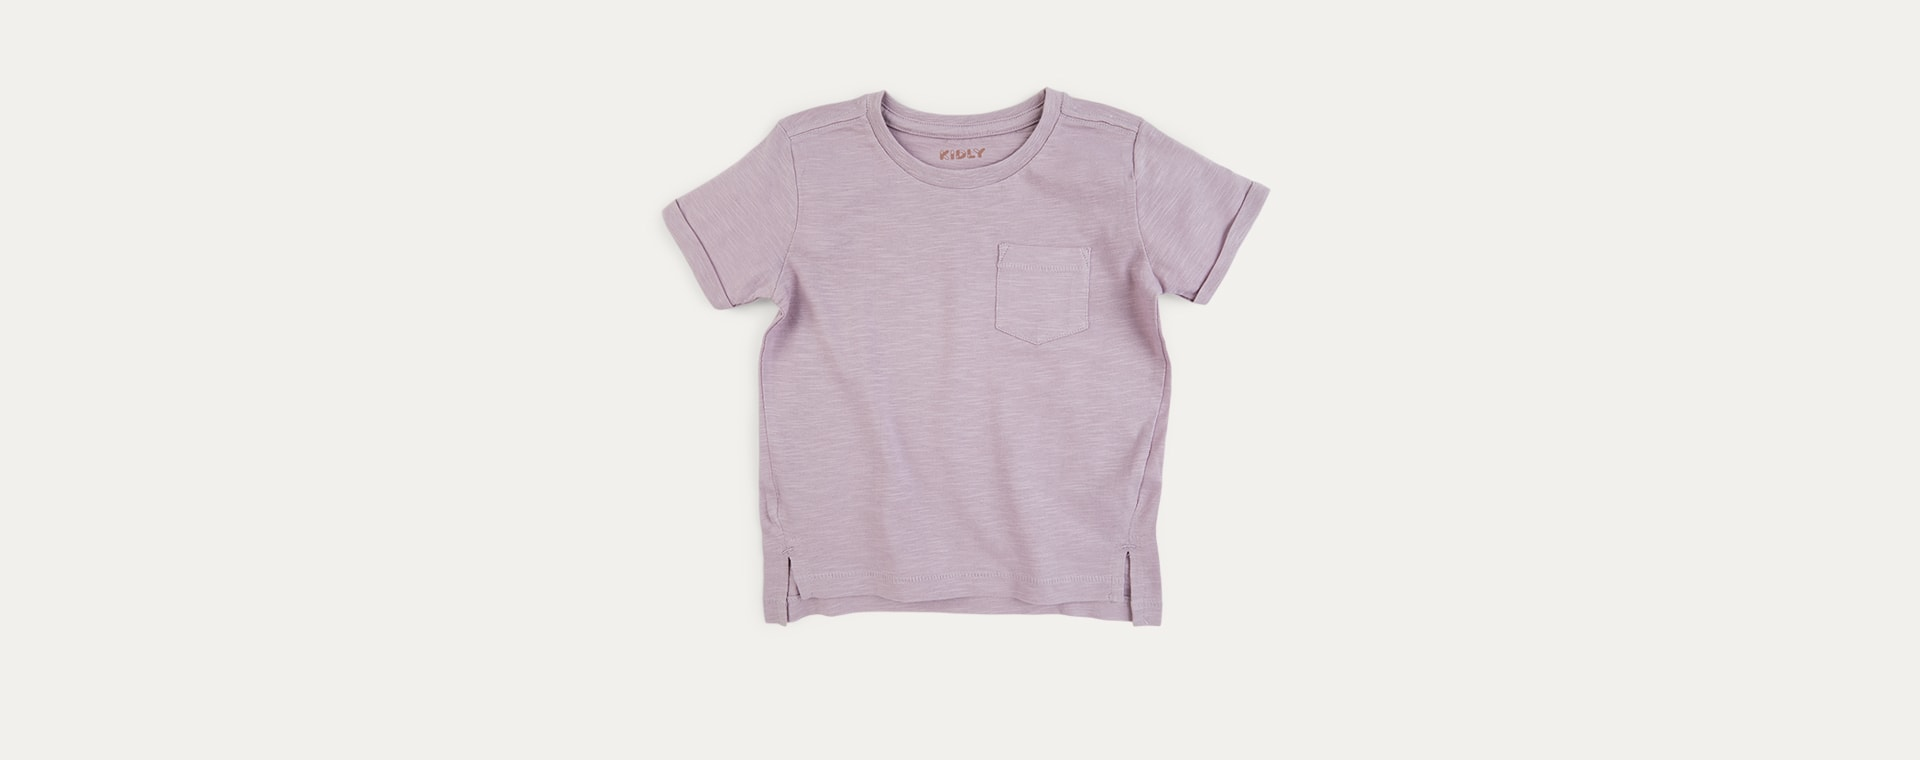 Heather KIDLY Label Perfect Tee